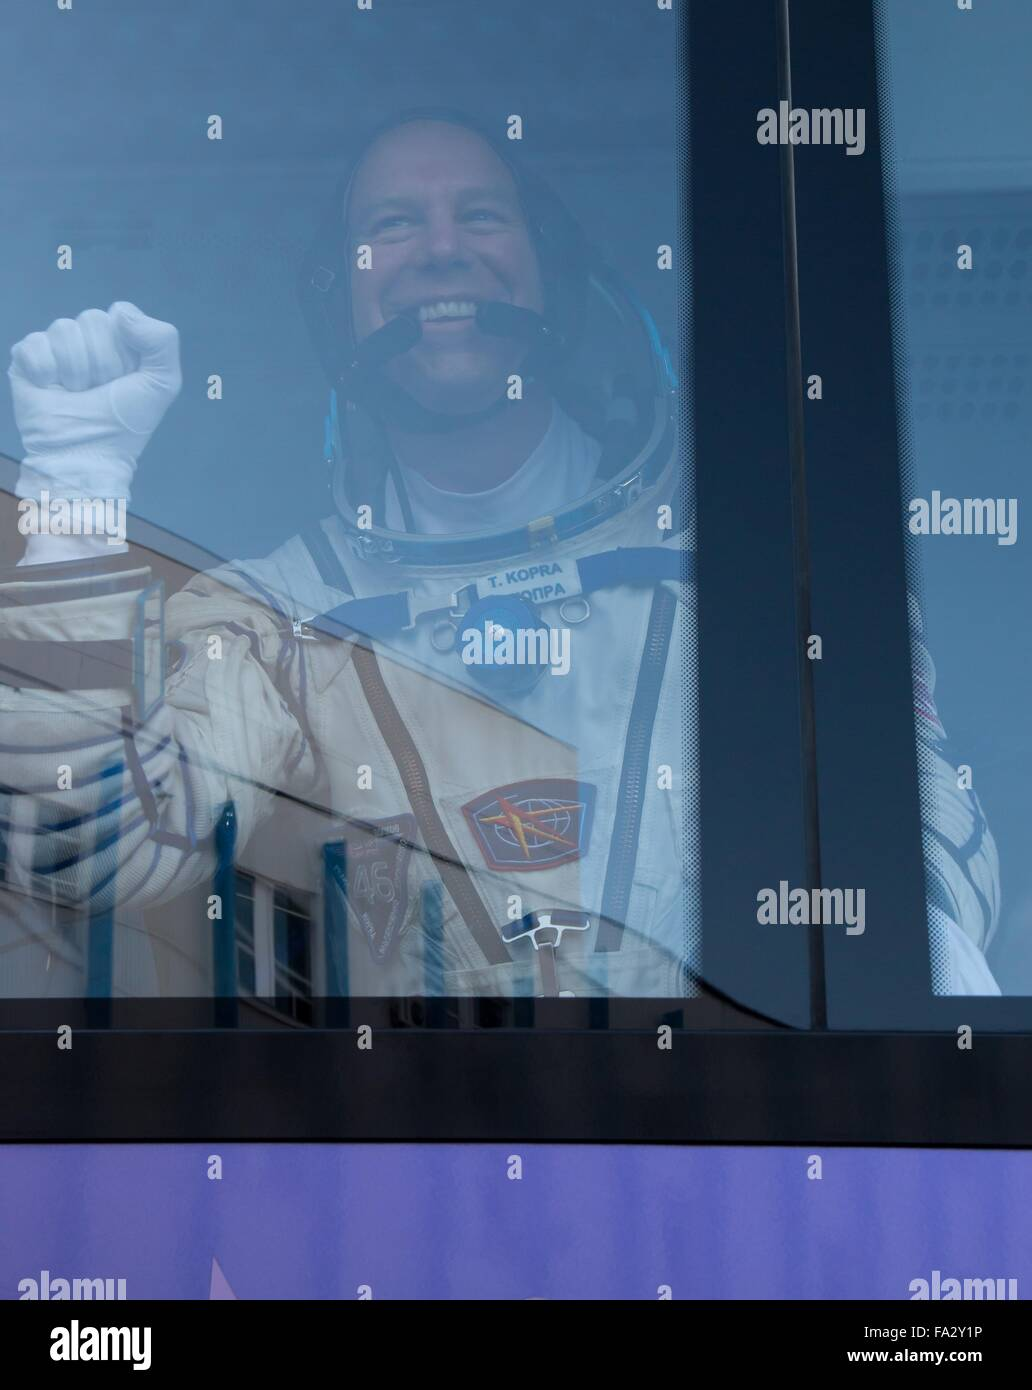 International Space Station Expedition 46 crew member American Tim Kopra waves from a bus as he depart Building - Stock Image